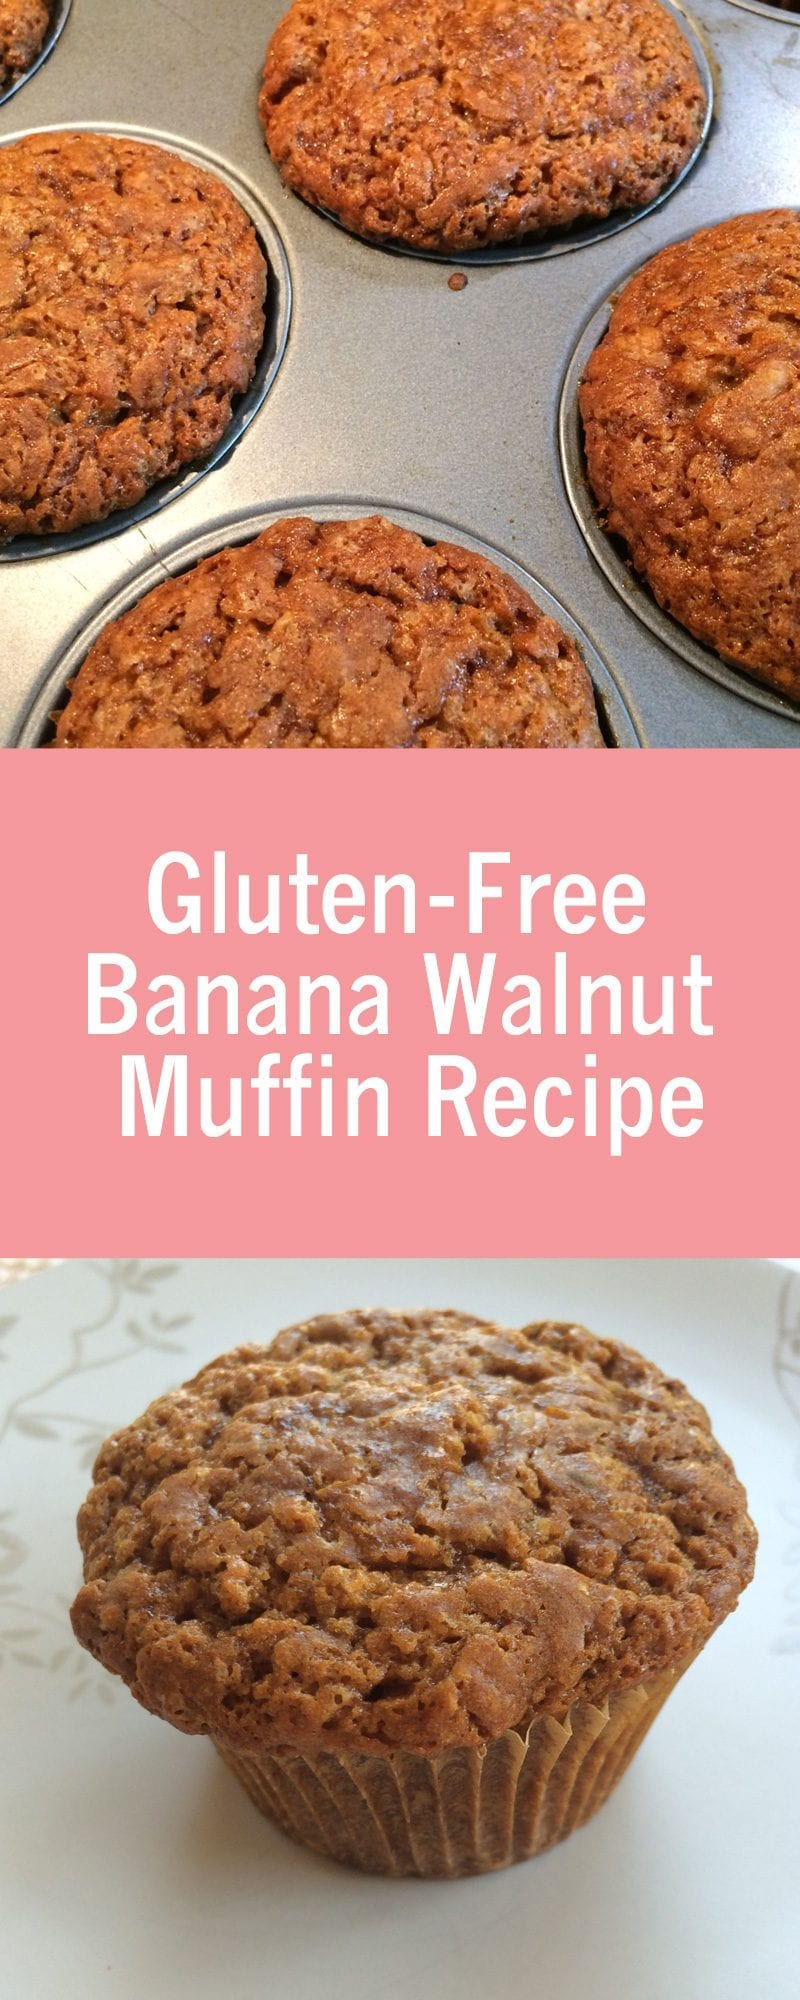 Gluten Free Banana Walnut Muffin recipe